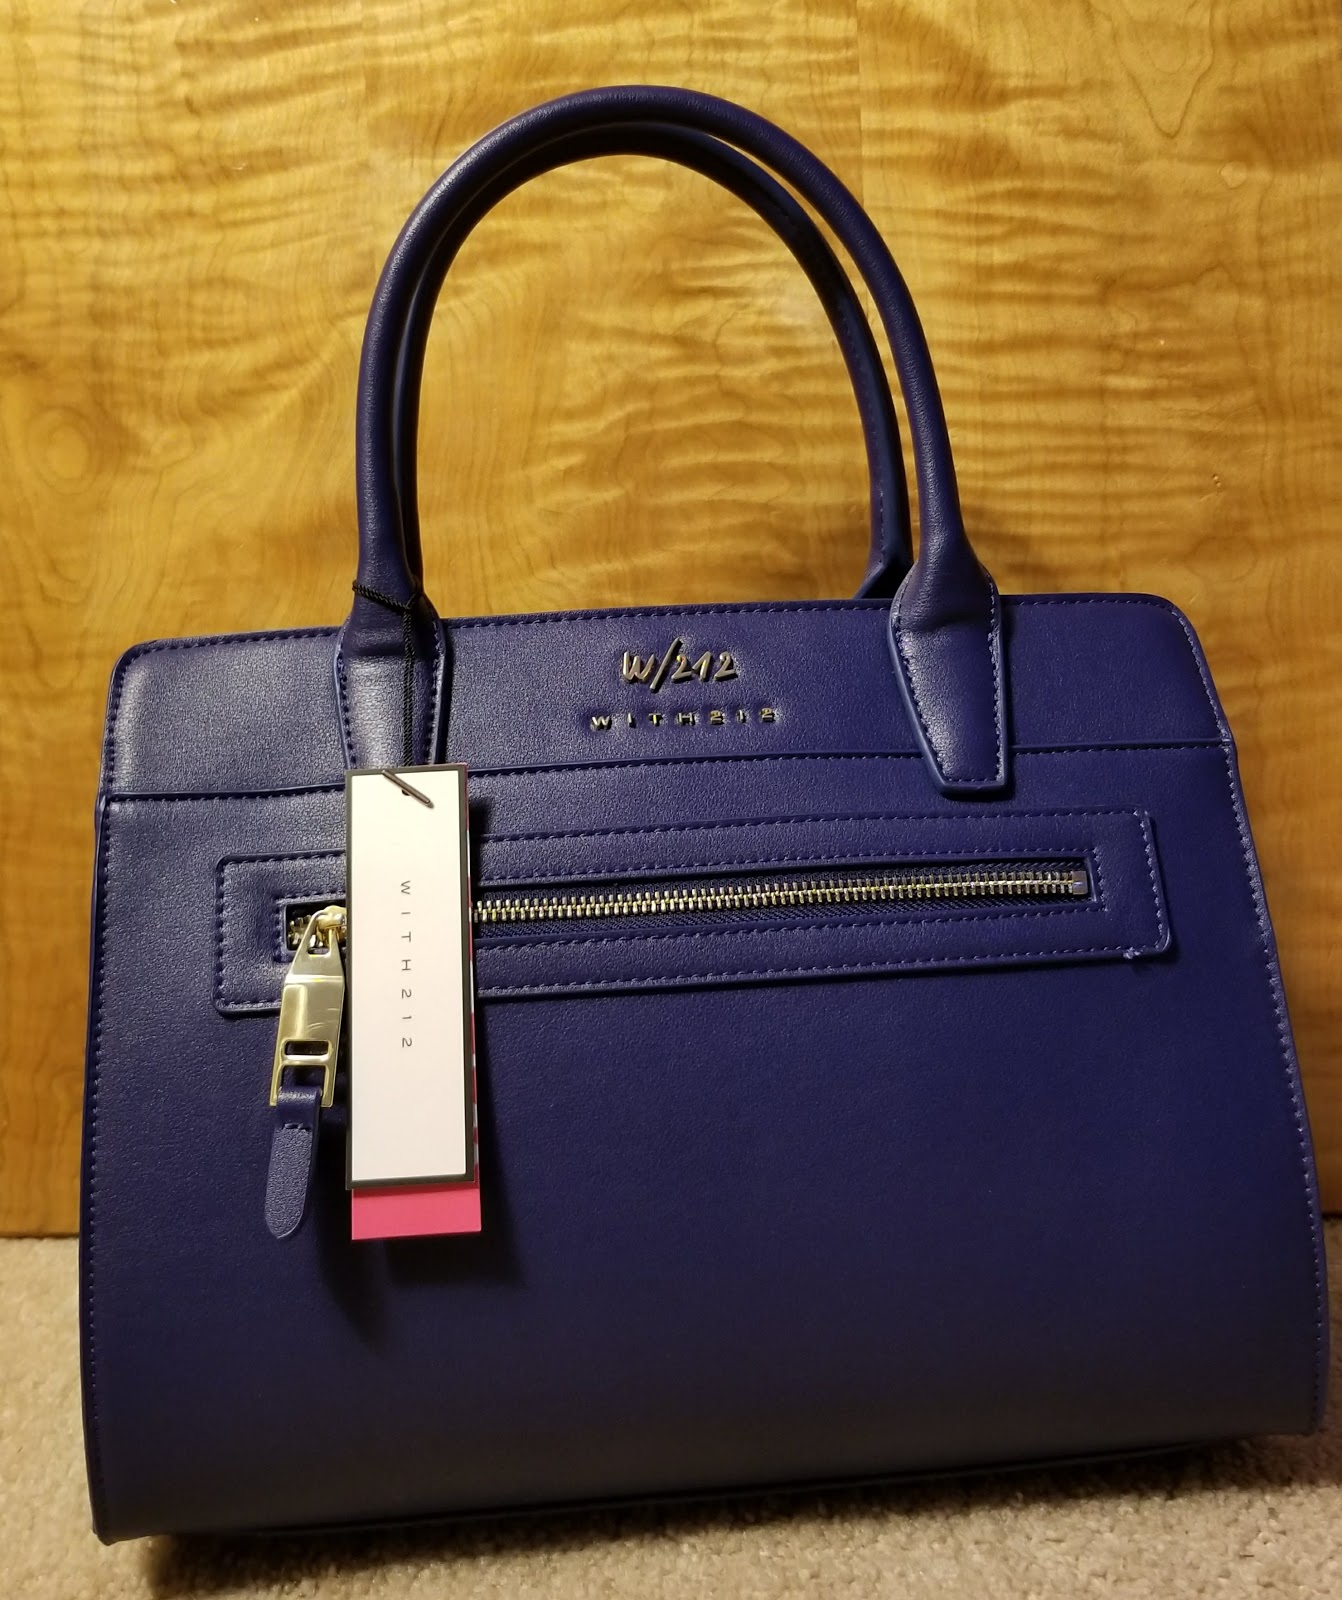 purse obsession coupon code